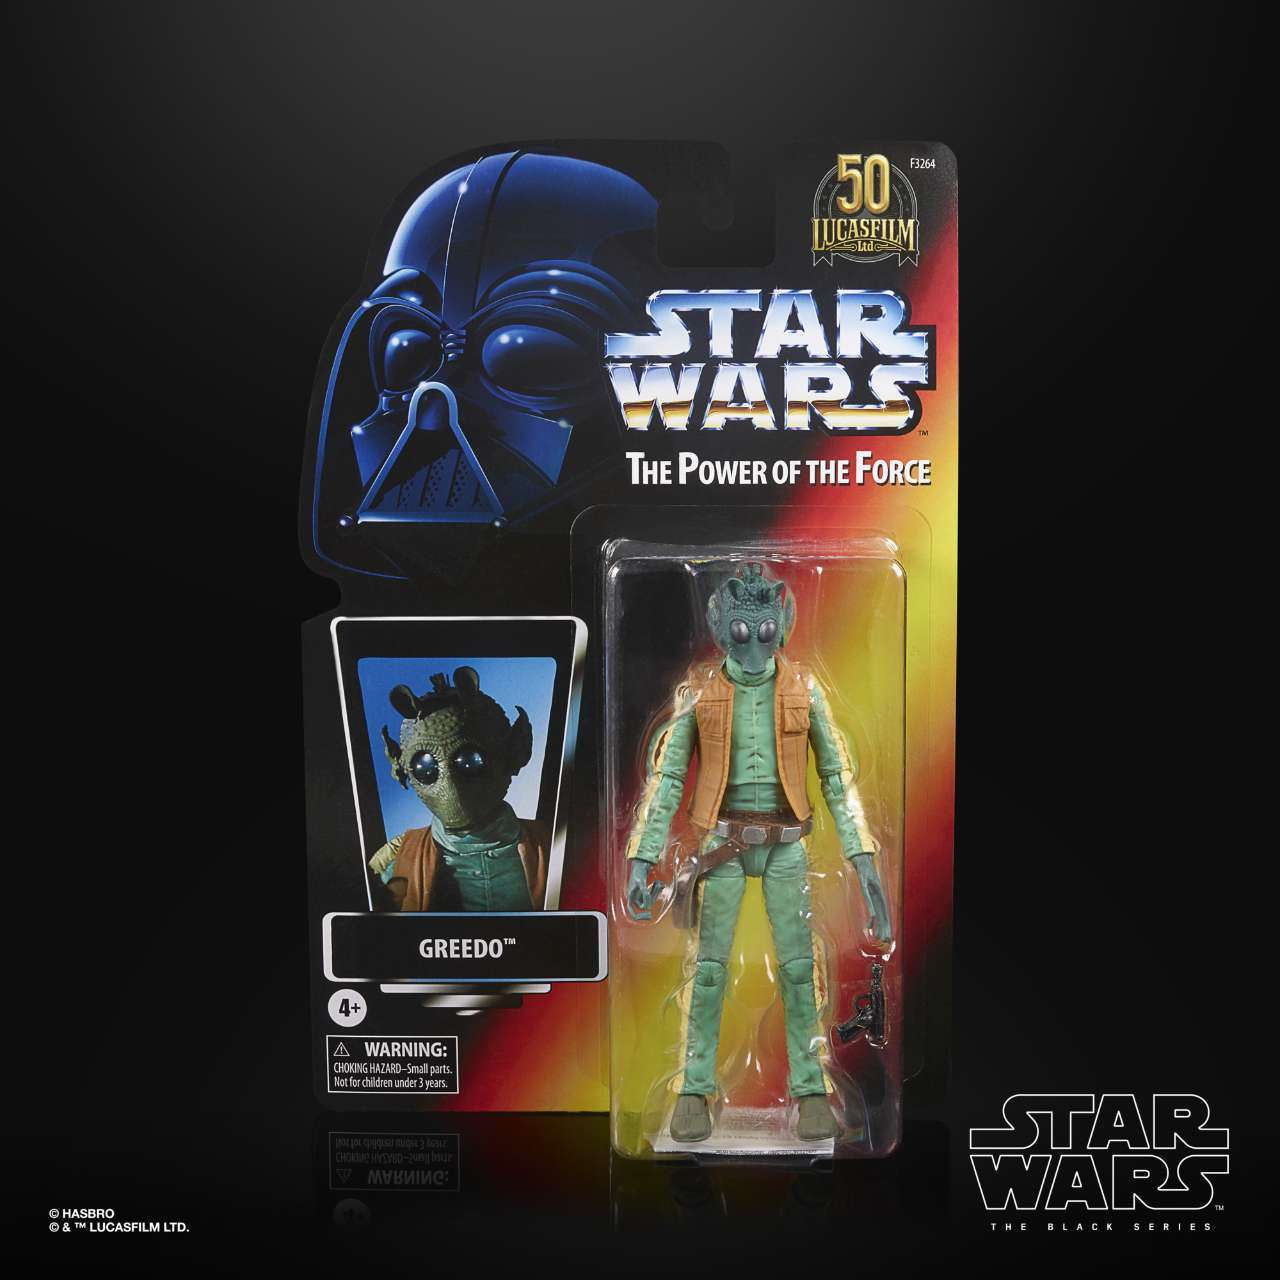 STAR WARS THE BLACK SERIES LUCASFILM 50TH ANNIVERSARY 6-INCH GREEDO Figure - in pck (1)